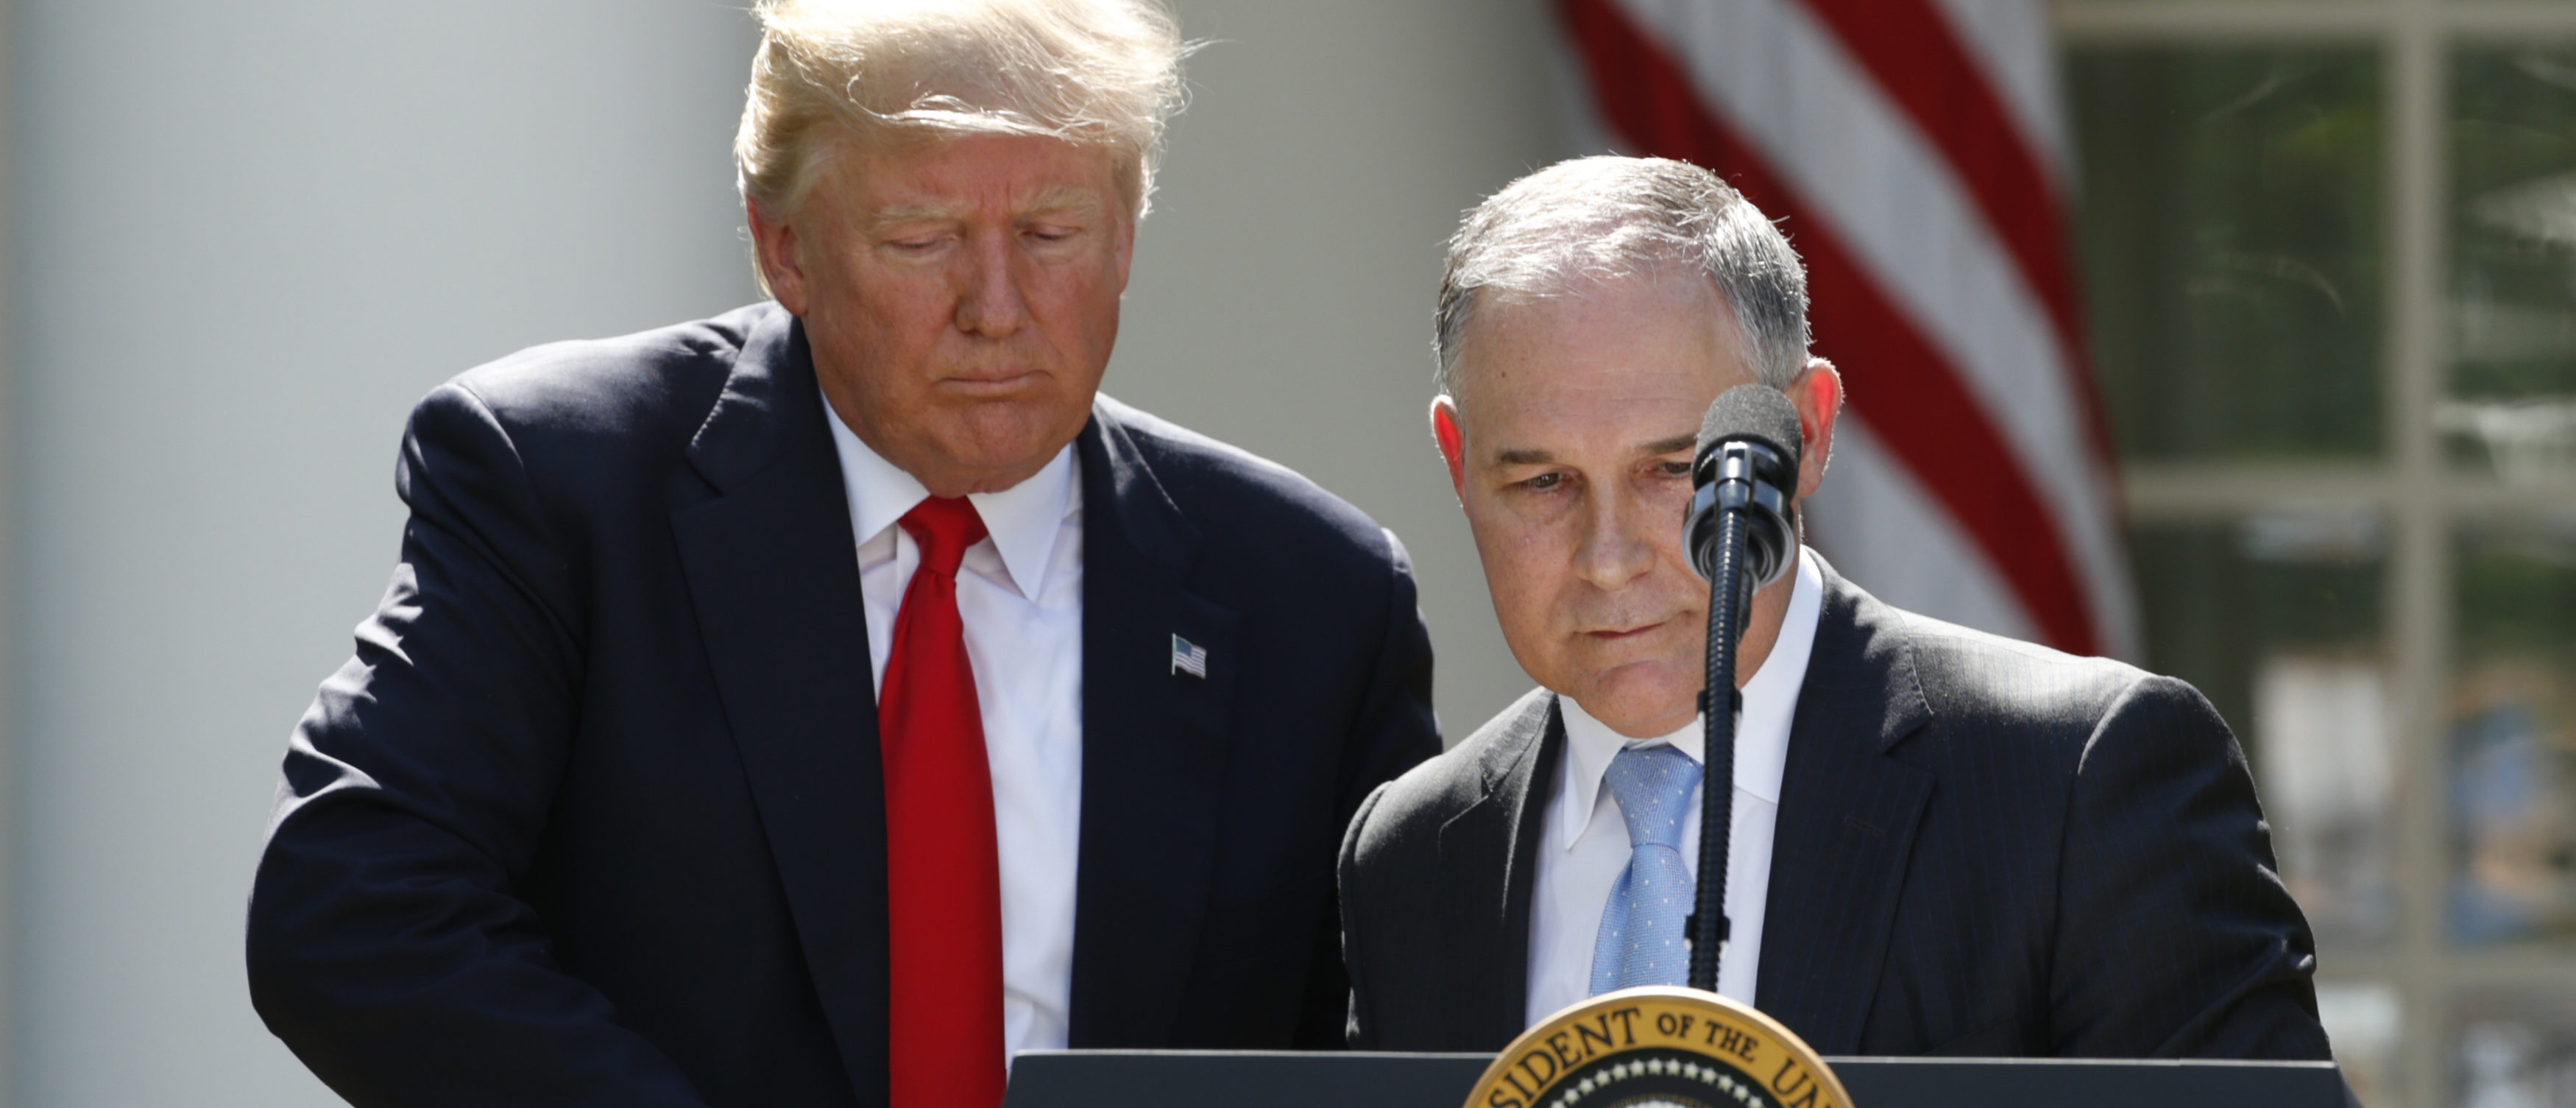 U.S. President Trump greets EPA Administrator Pruitt after announcing decision to withdraw from Paris Climate Agreement in the White House Rose Garden in Washington